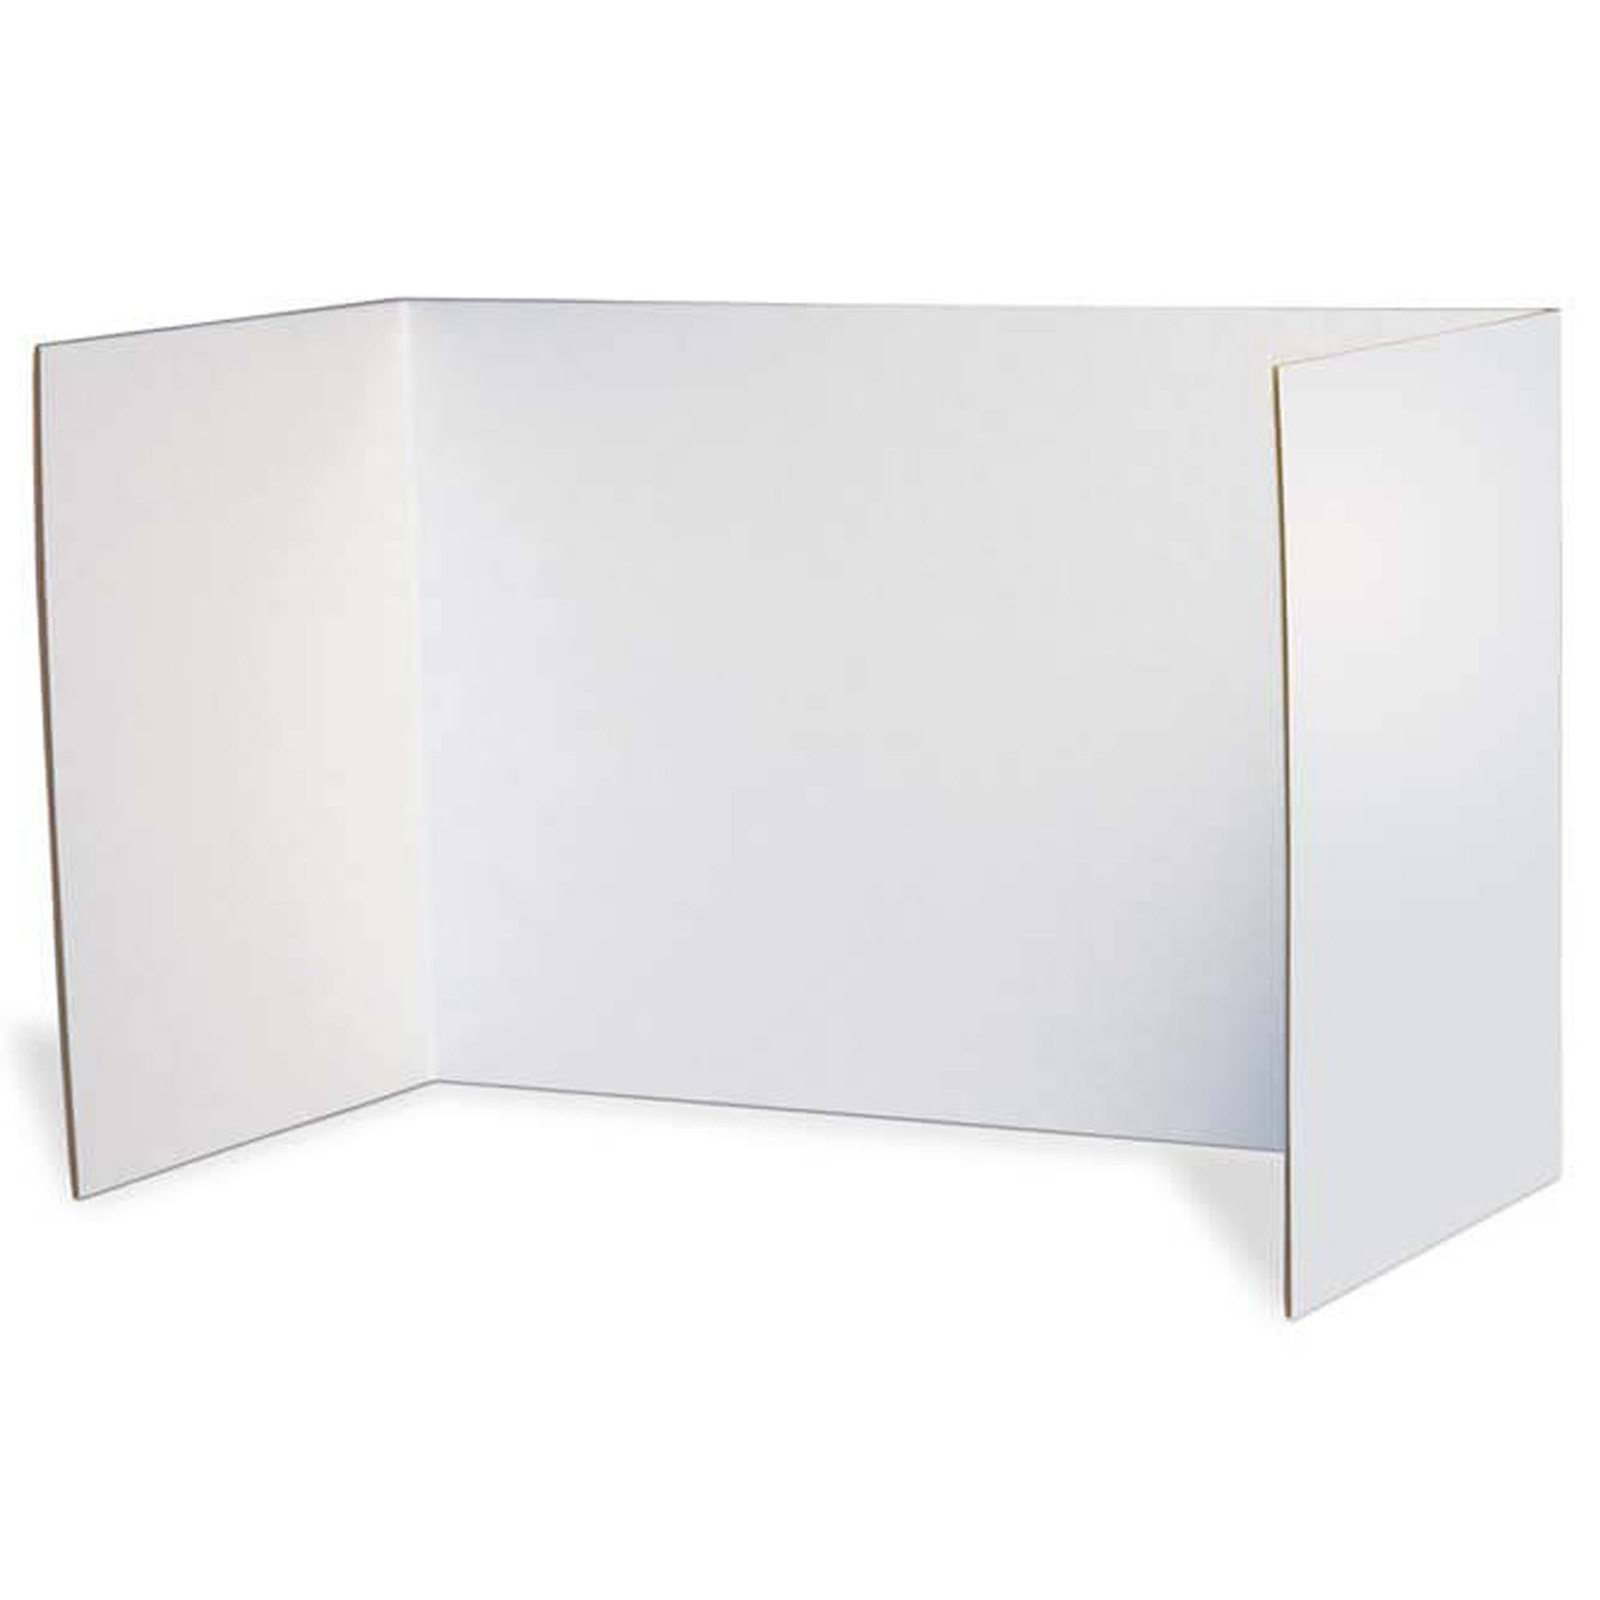 Pacon PAC3782BN Privacy Boards, White, 48'' x 16'', 4 Per Pack, 2 Packs